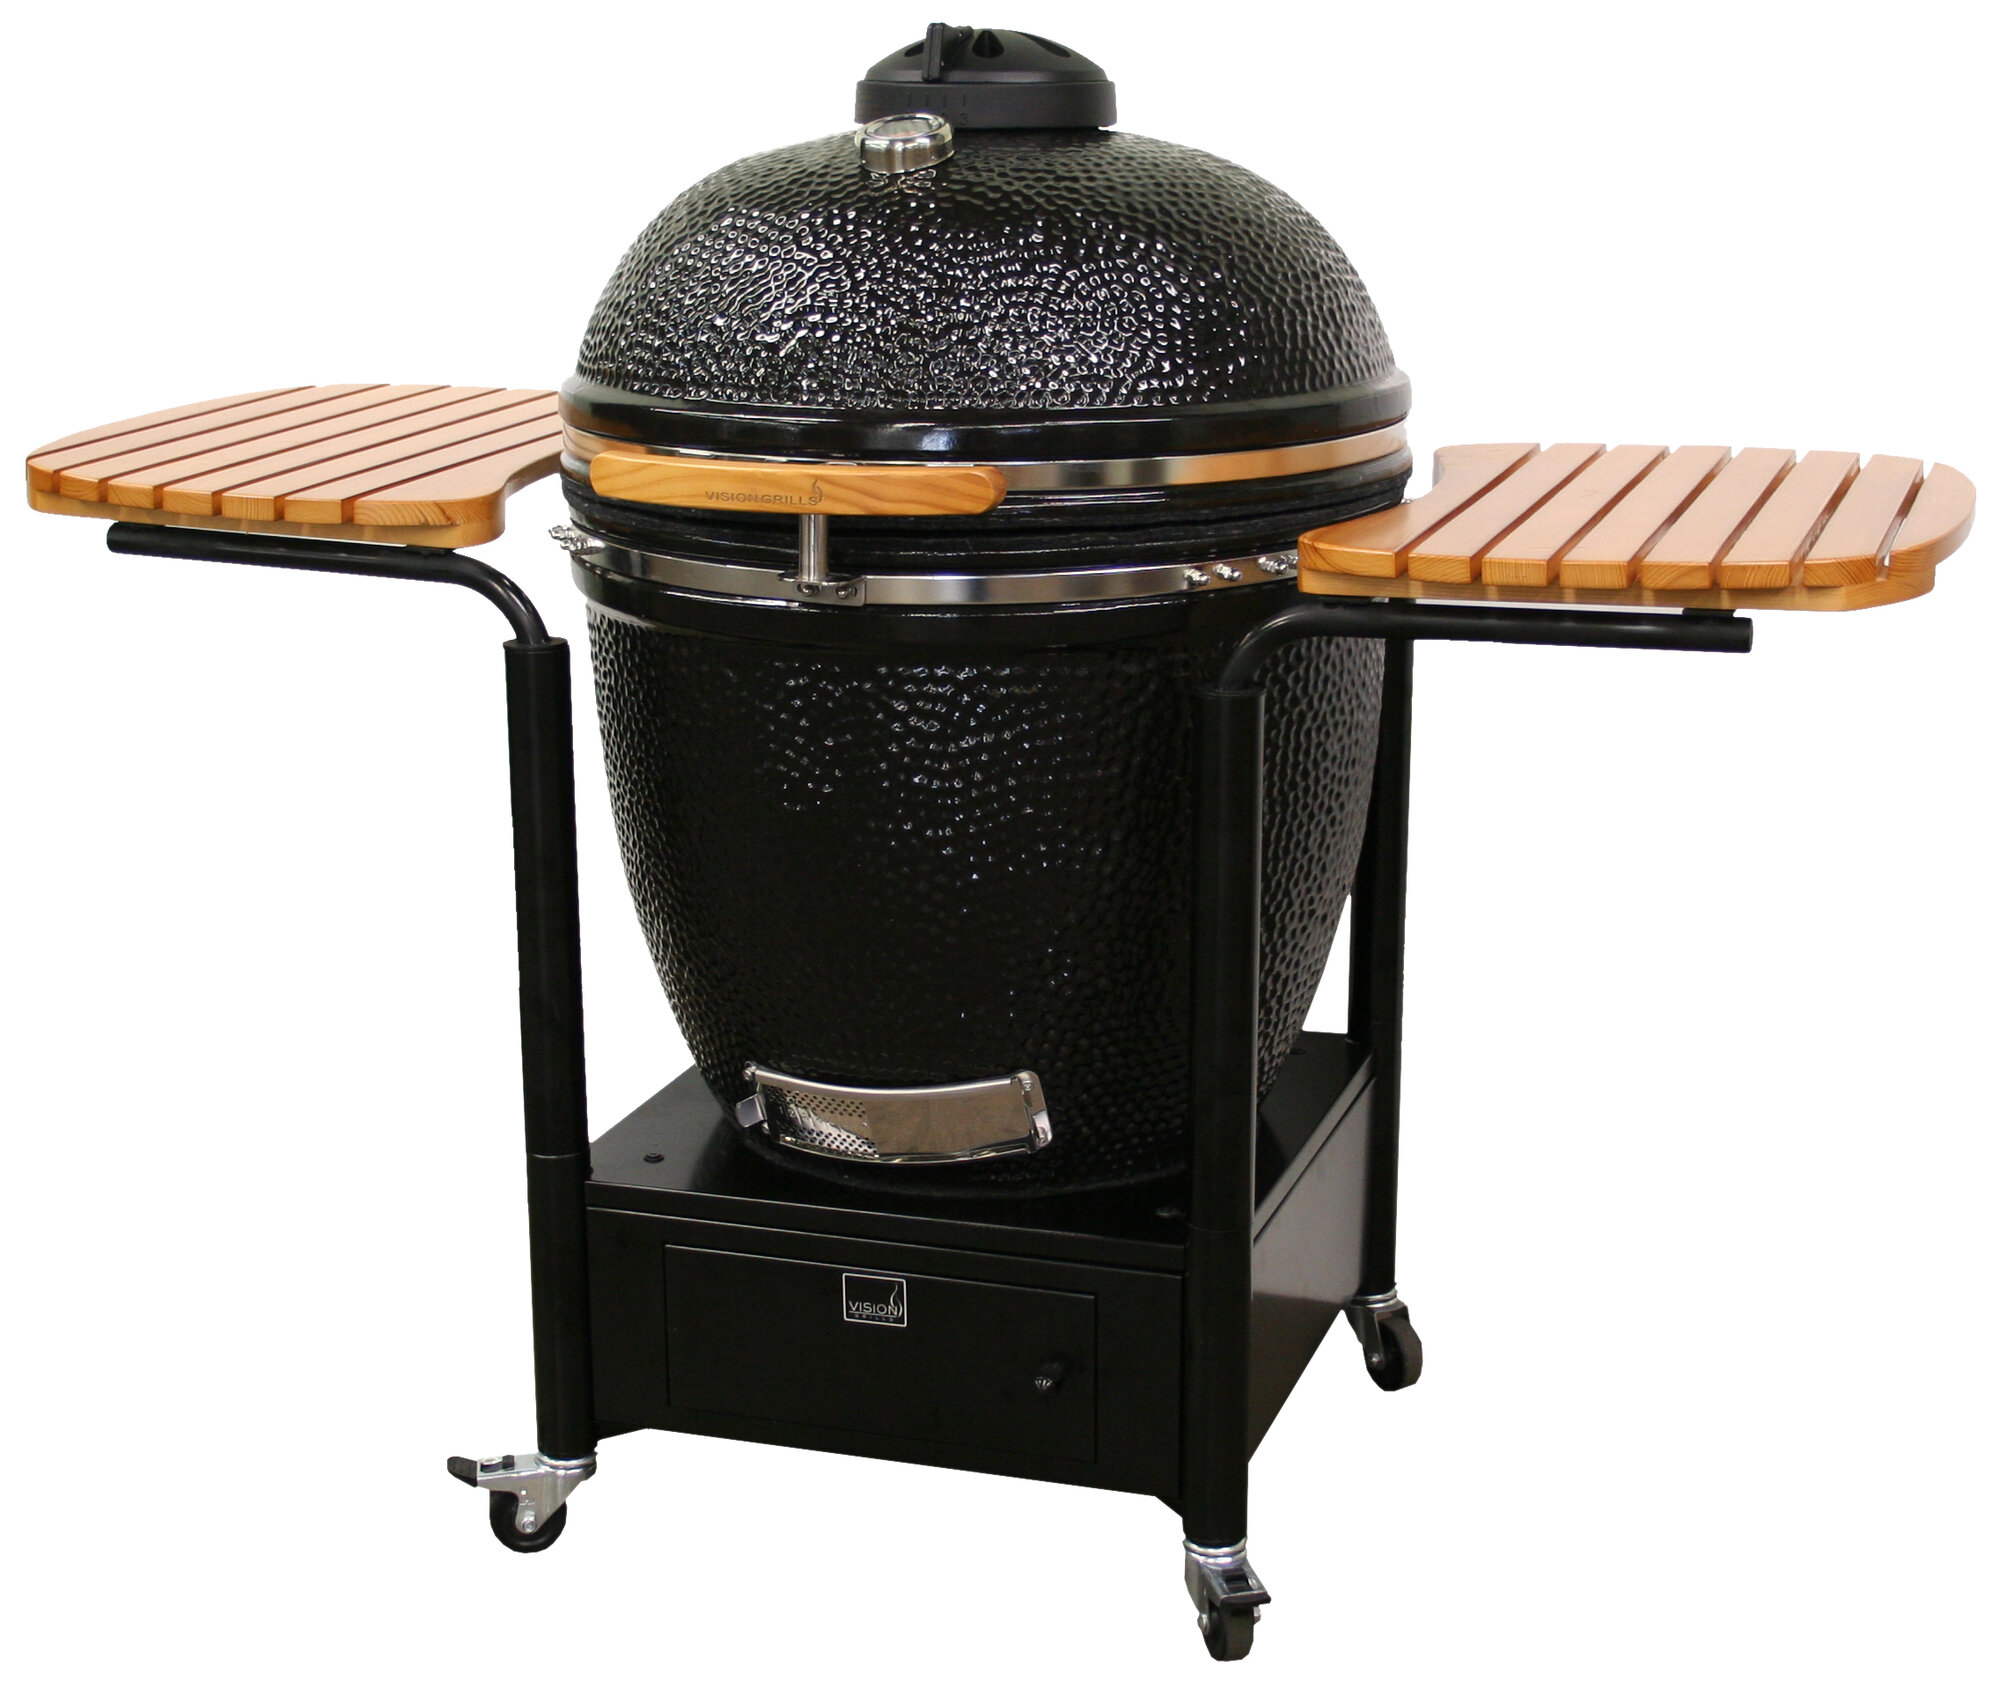 vision grills xl series kamado charcoal grill with smoker. Black Bedroom Furniture Sets. Home Design Ideas